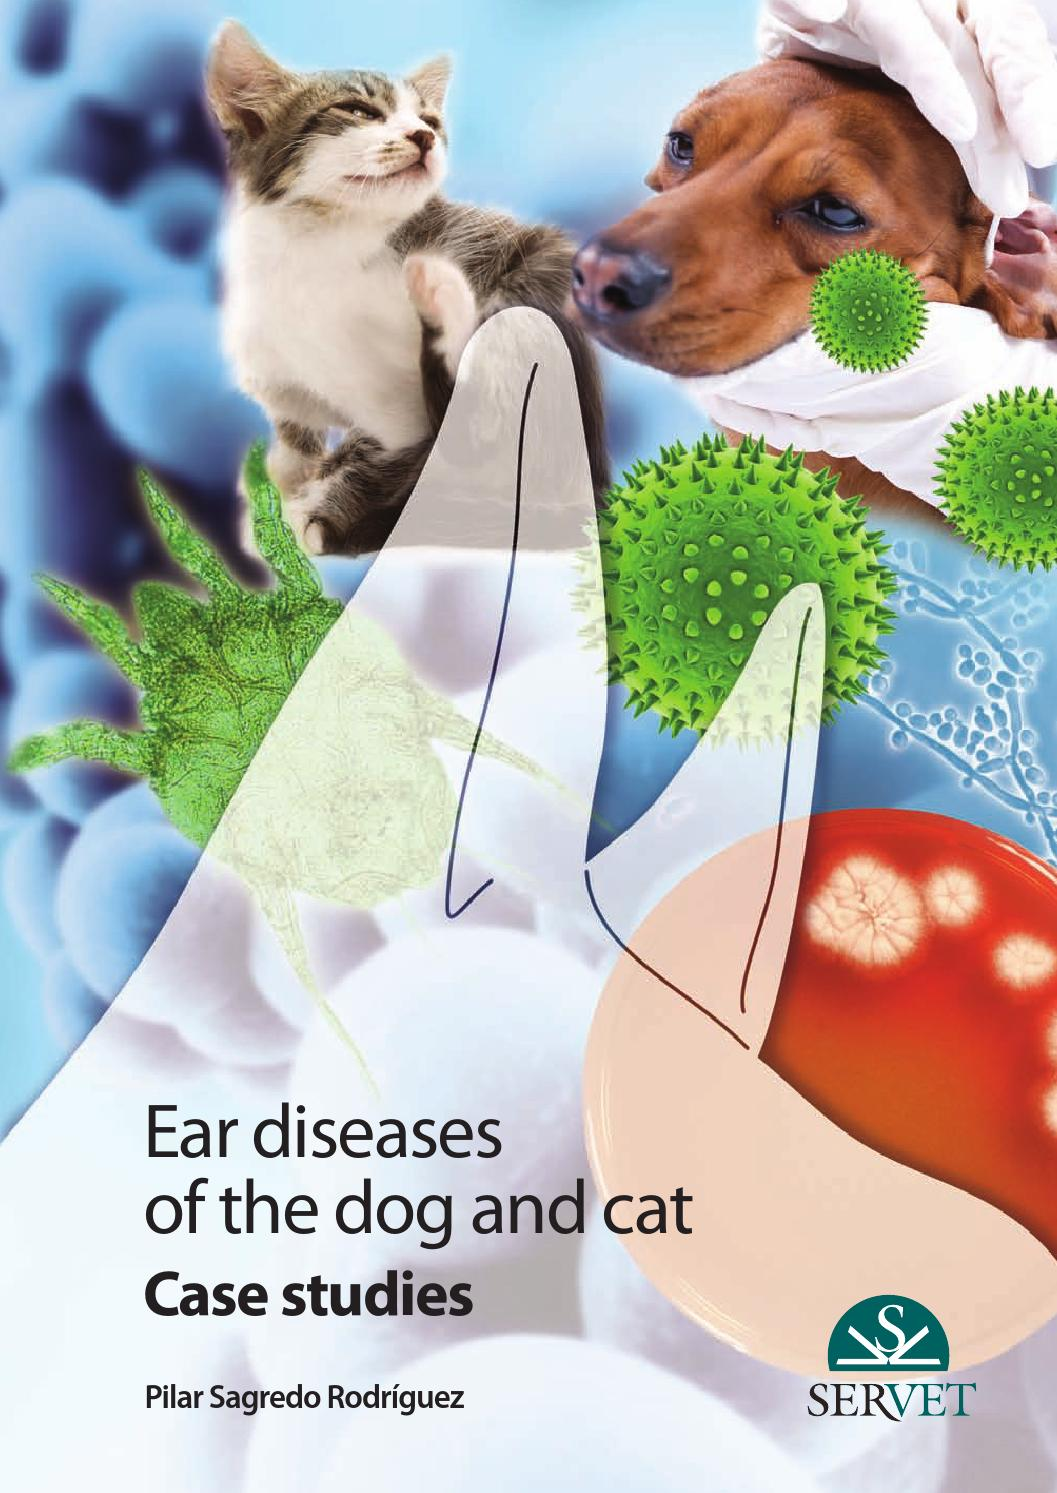 Ear diseases of the dog and cat  Case studies by Grupo Asís